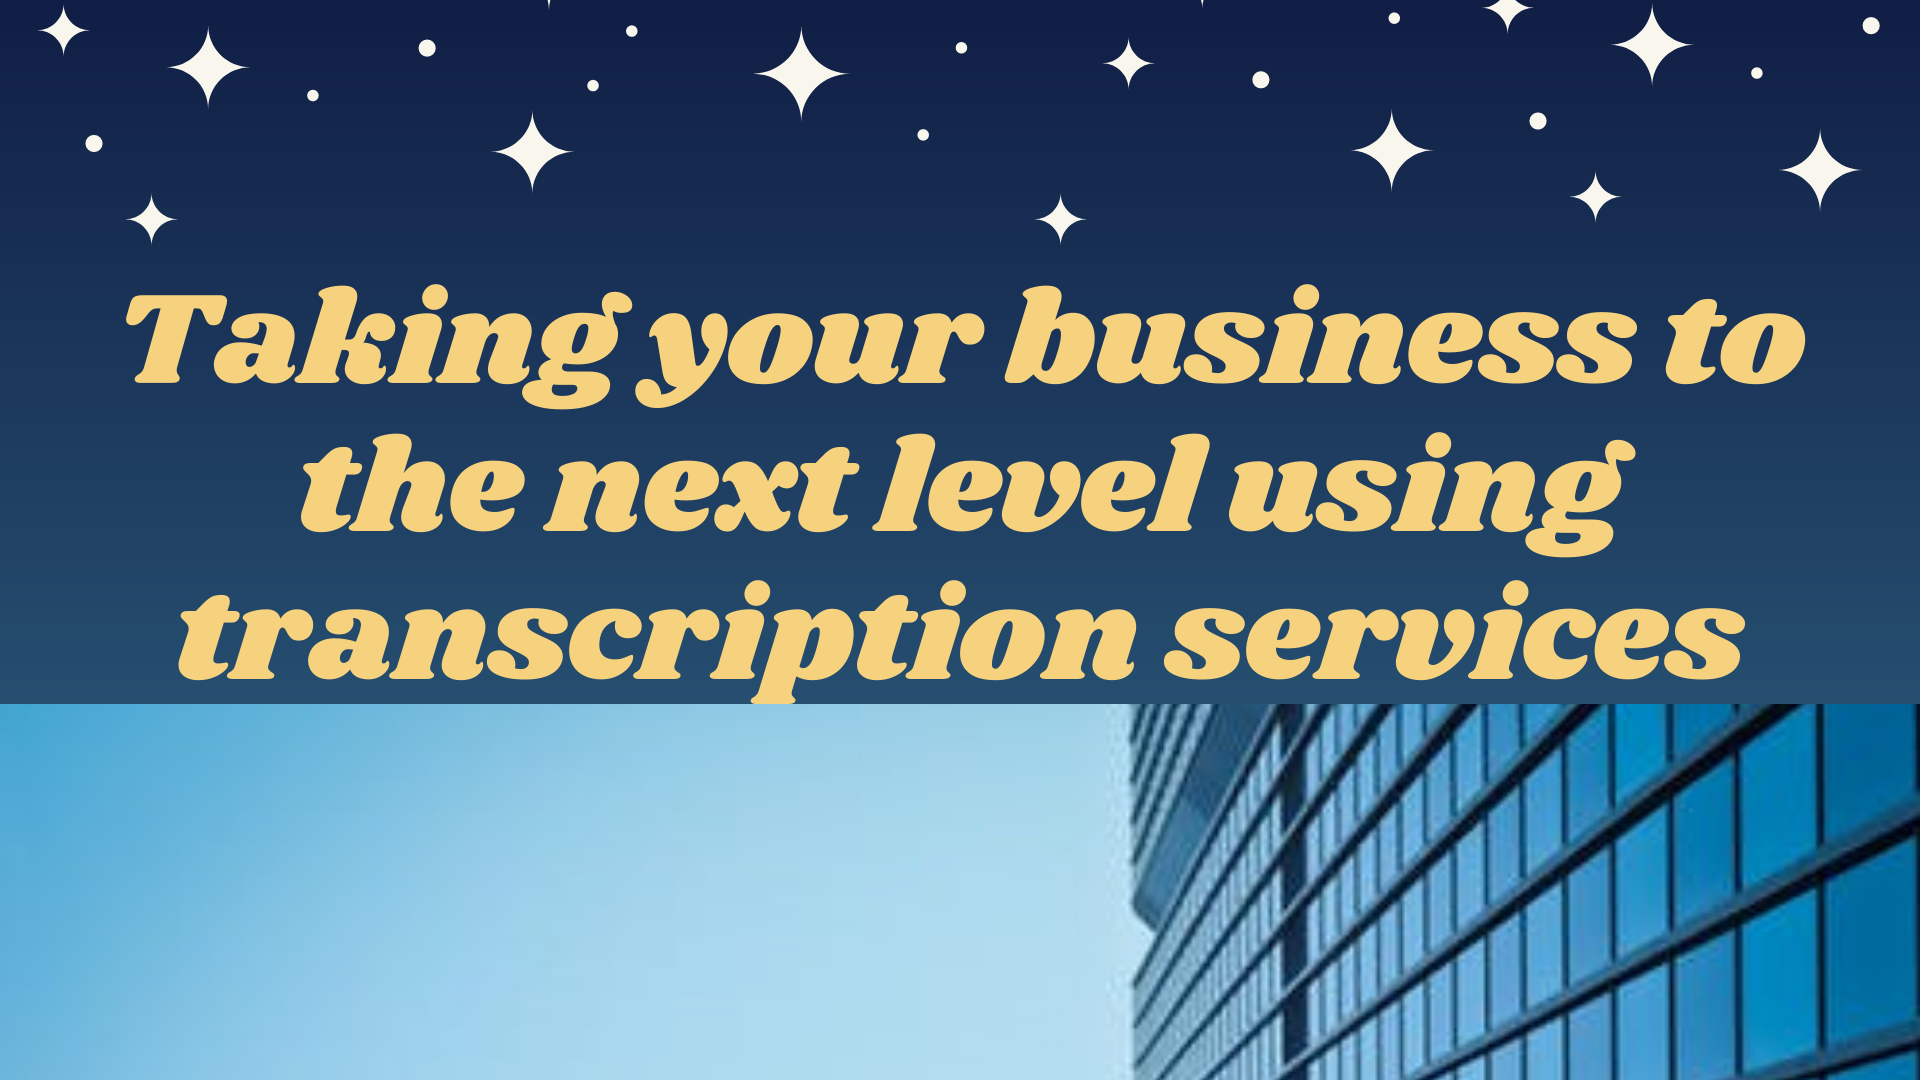 Taking your business to the next level using transcription services